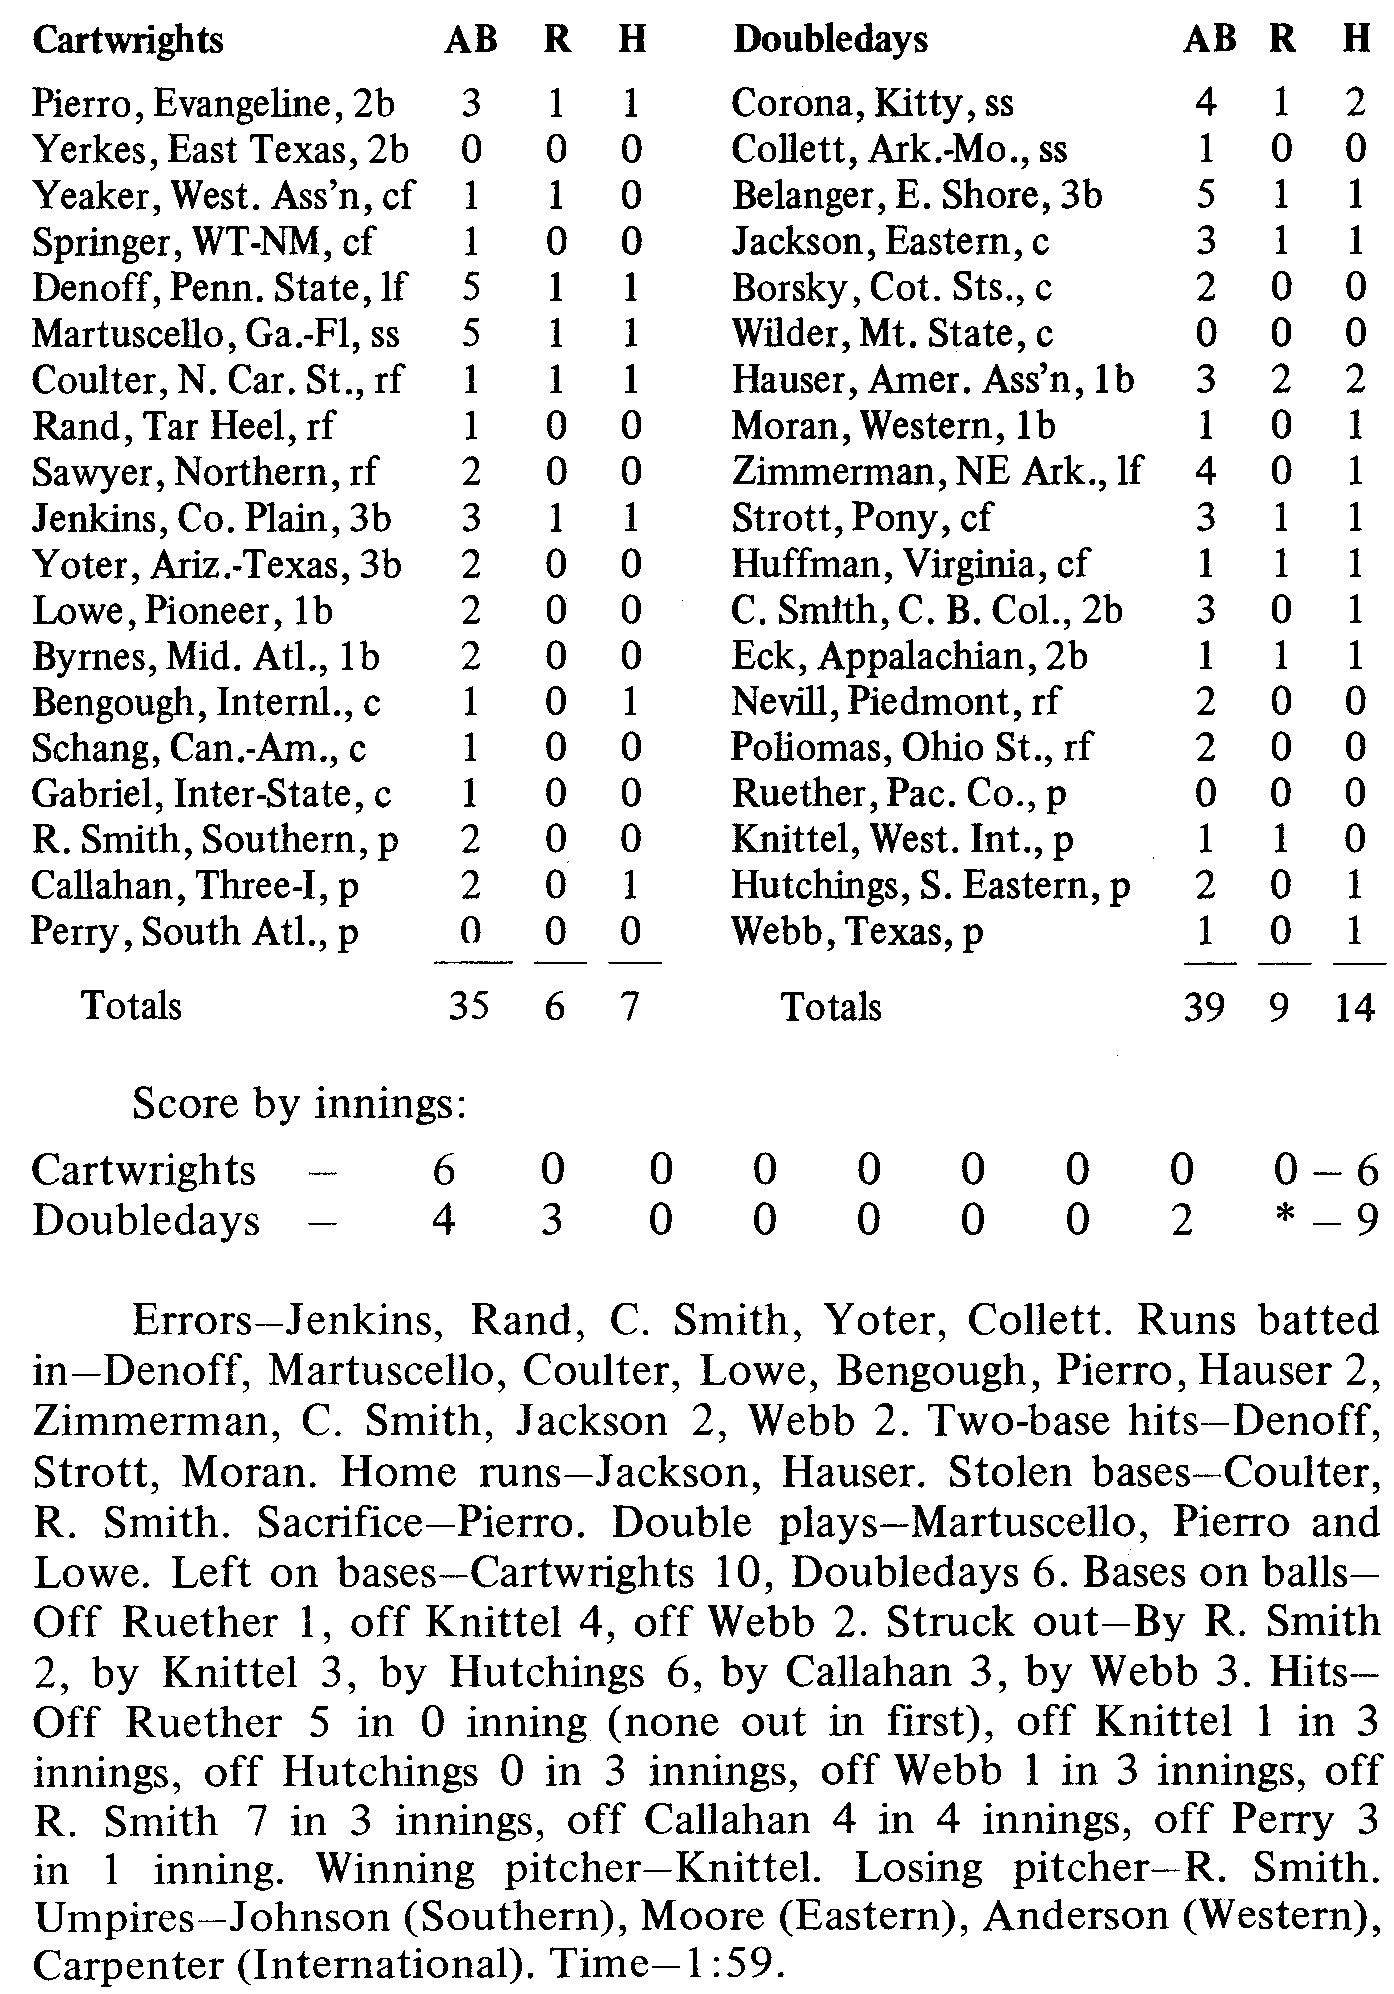 Doubledays vs. Cartwrights box score